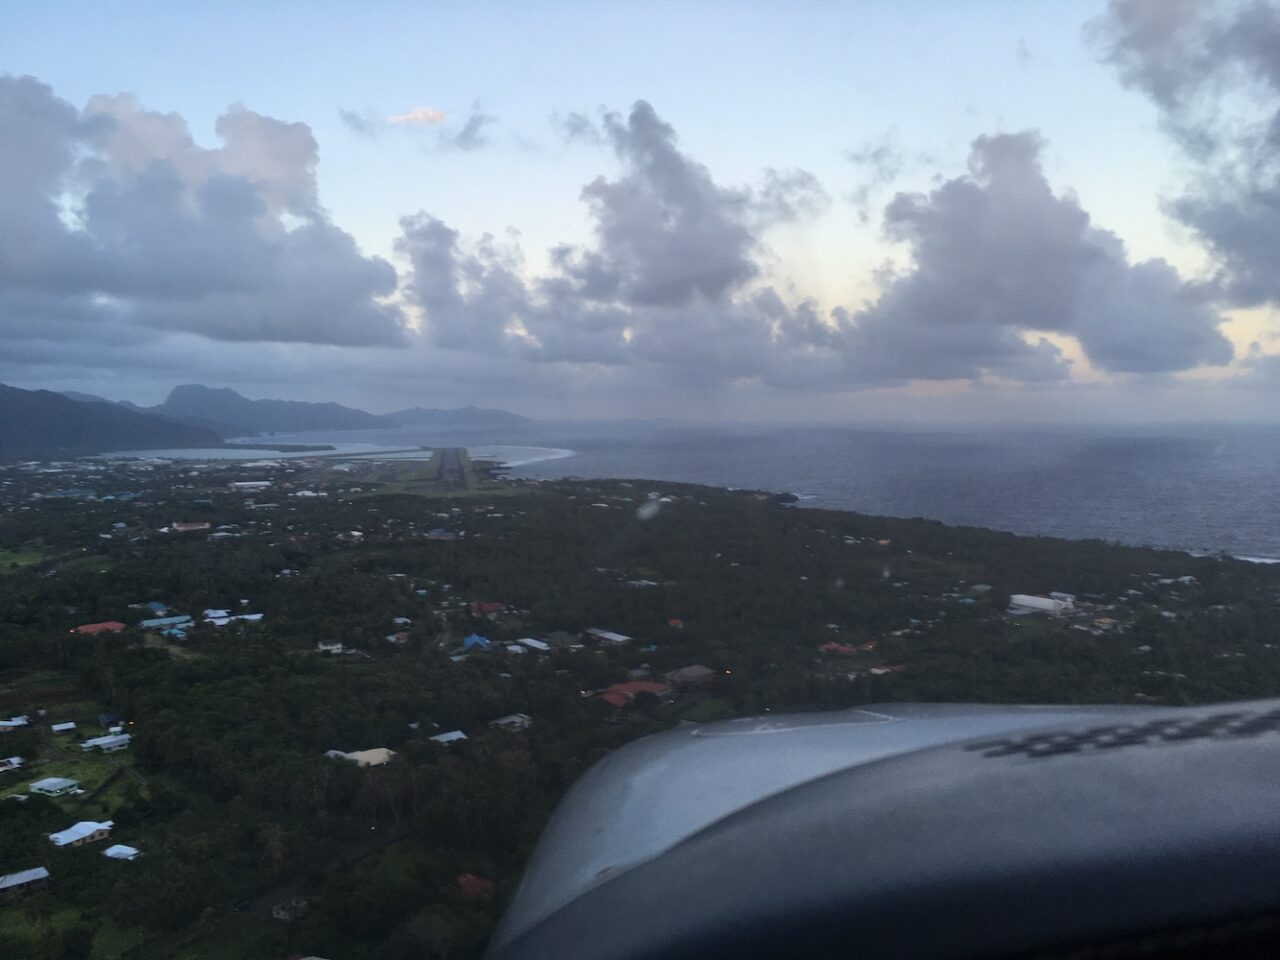 A – Pago Pago – Center – Airfield juts out into ocean and the waves crash along the sides, spraying onto the field – wild